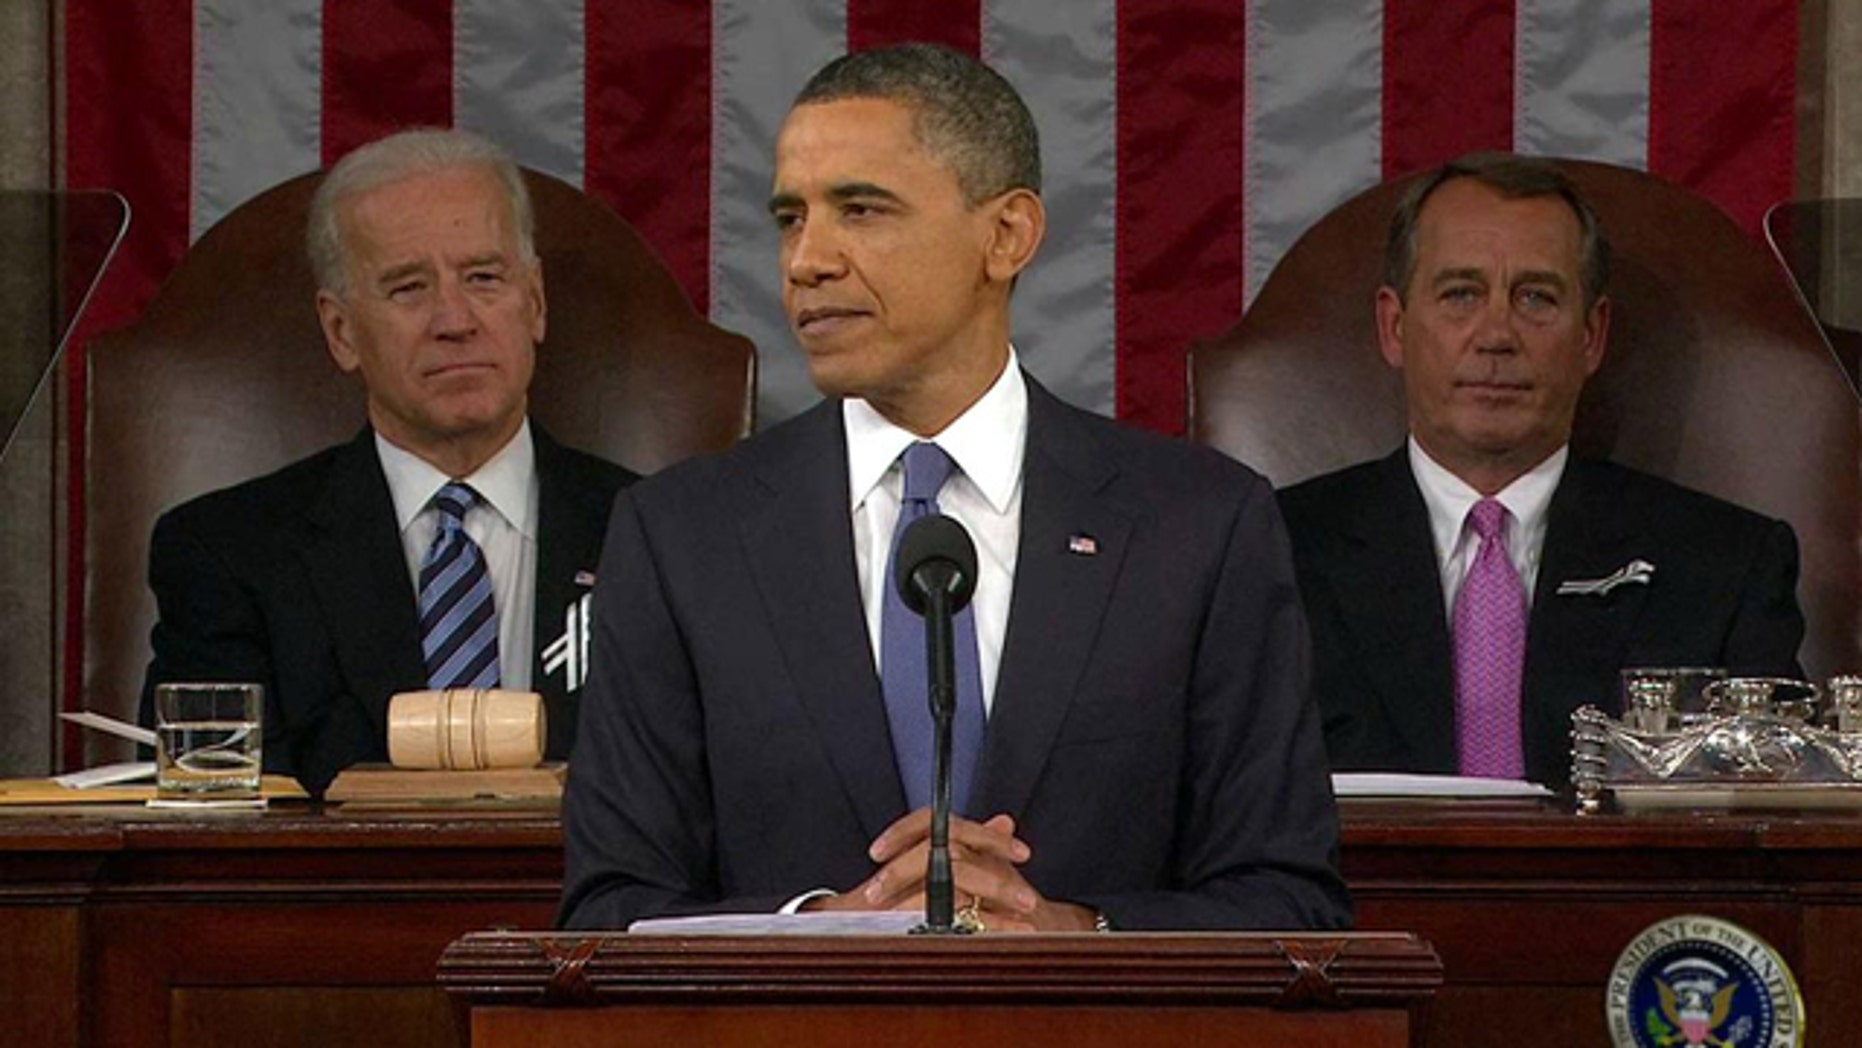 Jan. 25: President Obama addresses Congress during his State of the Union Address as Vice President Joe Biden and House Speaker John Boehner listen.